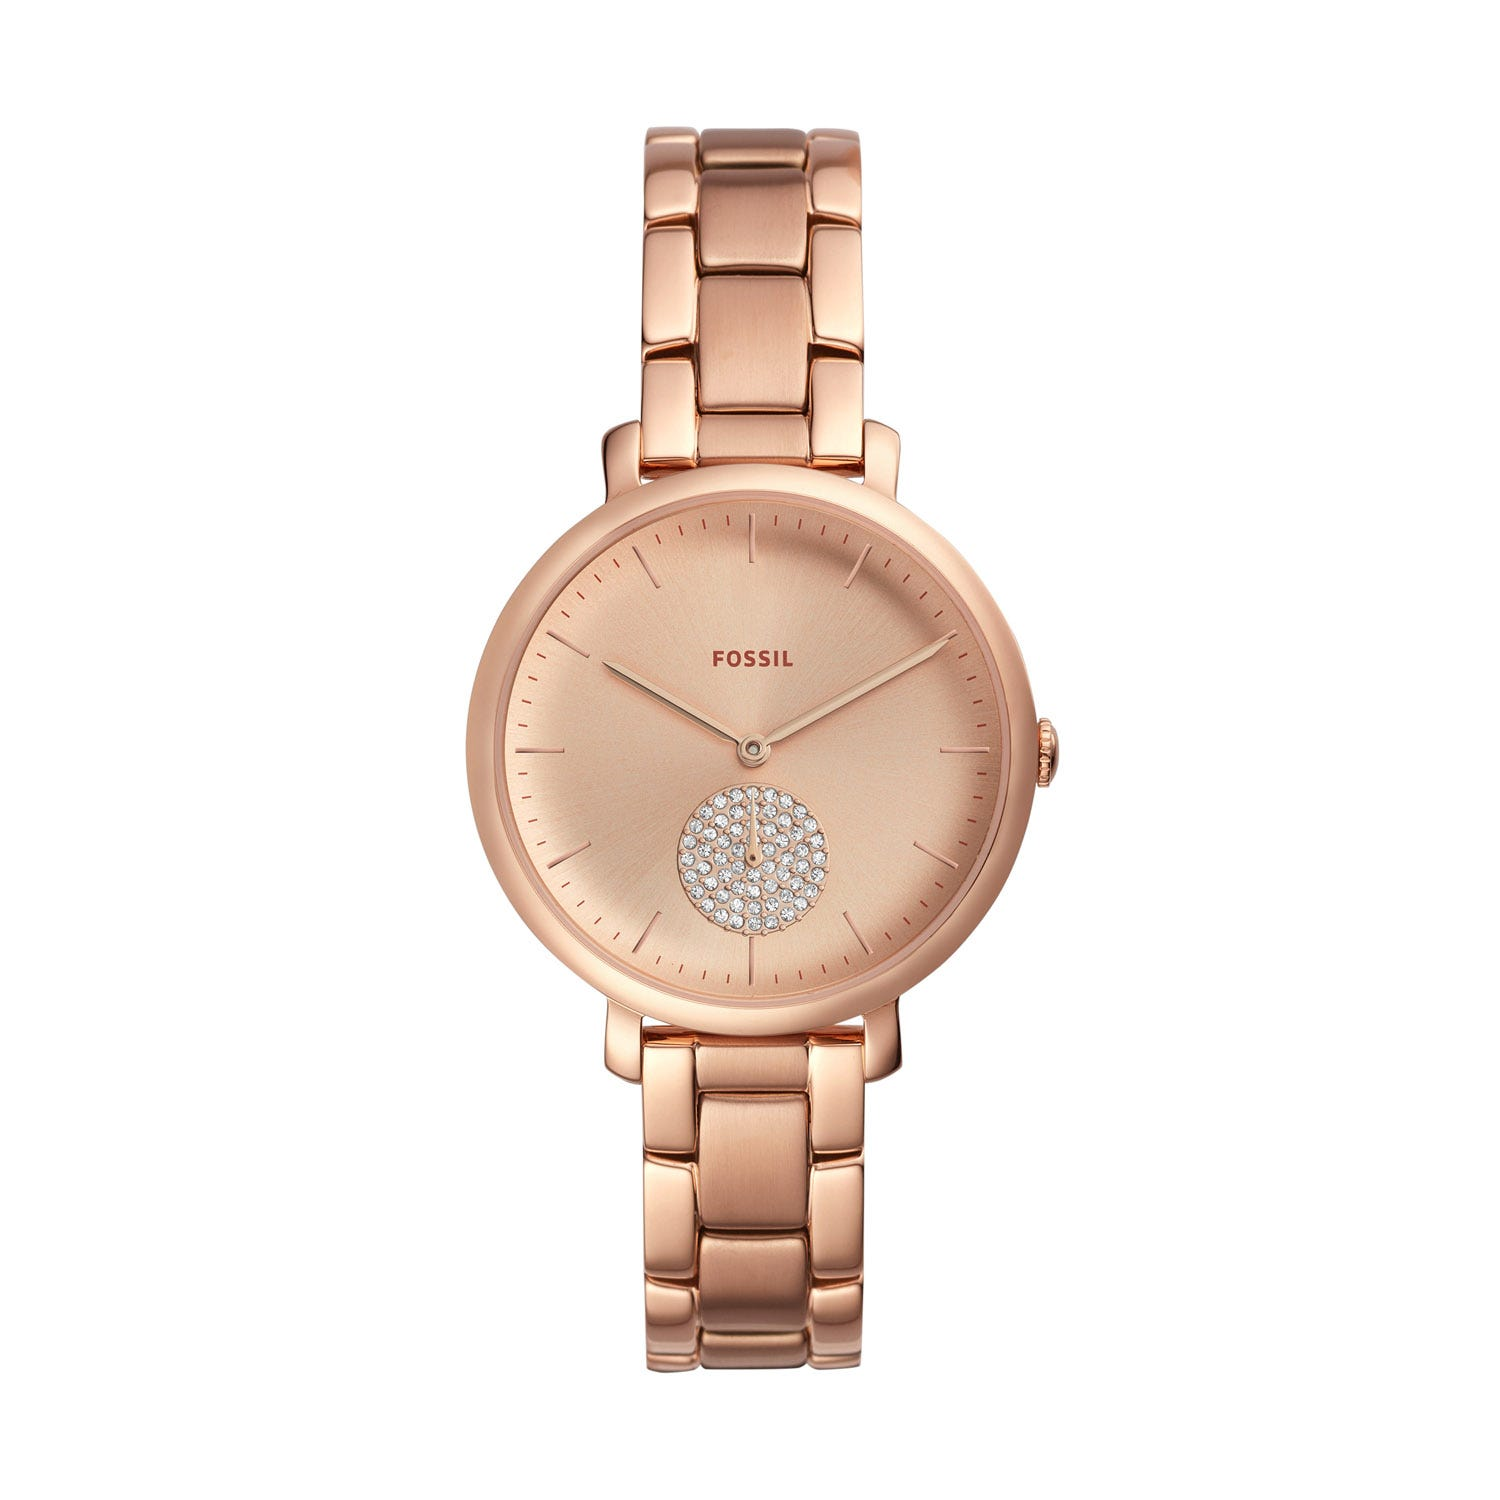 Fossil Jacqueline Crystal & Rose Gold 36mm Ladies' Watch